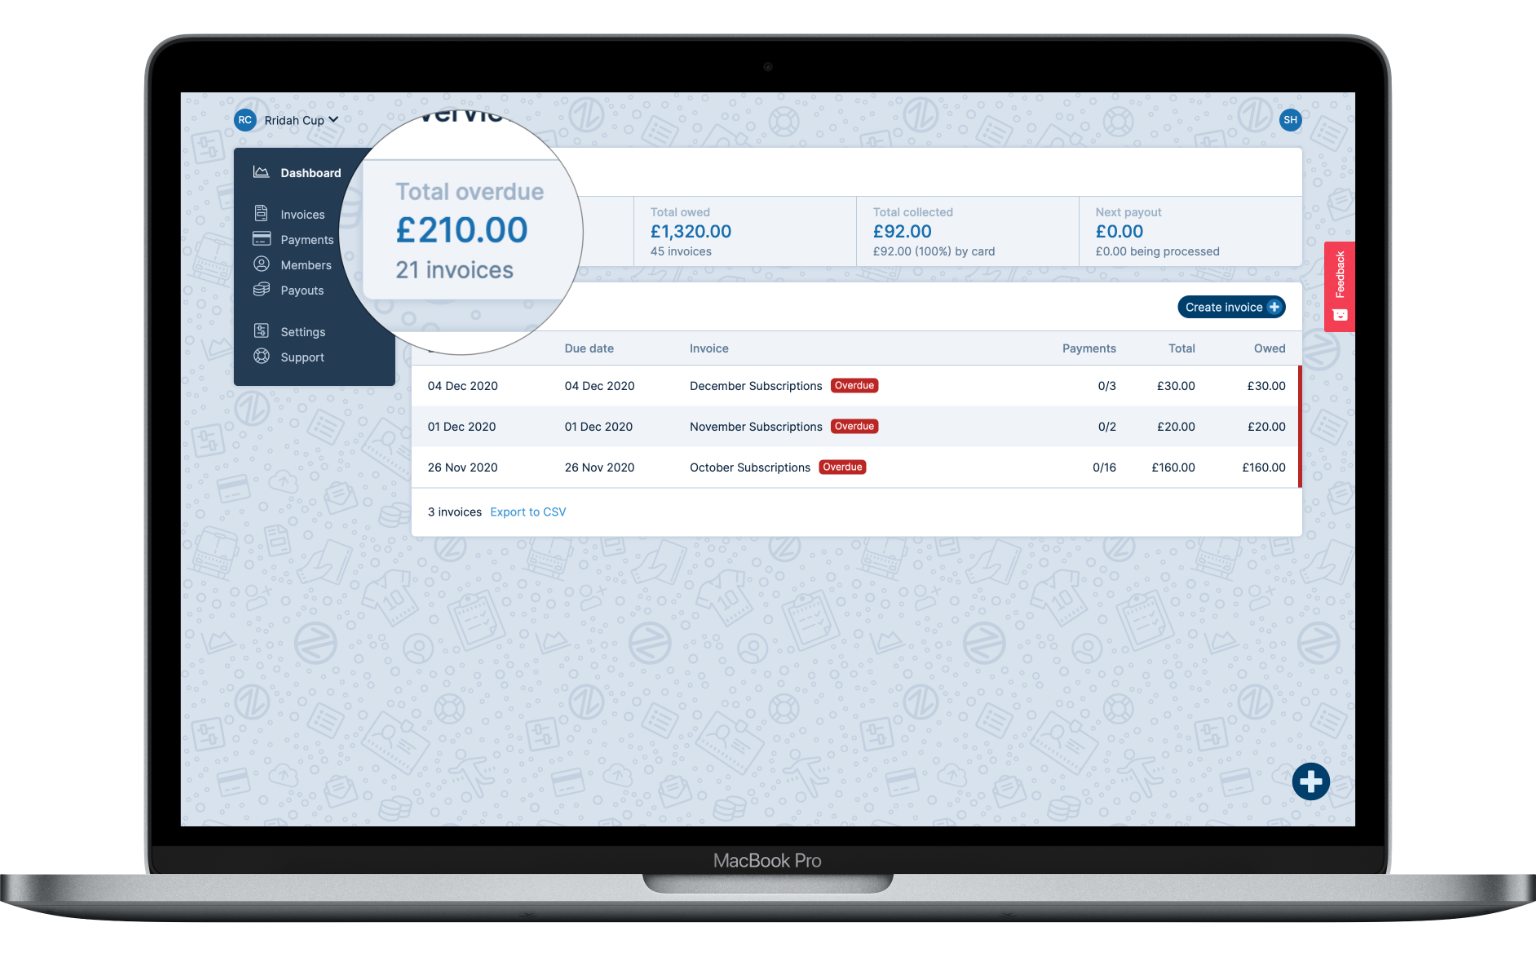 Payzip dashboard showing £210 overdue over 21 member invoices